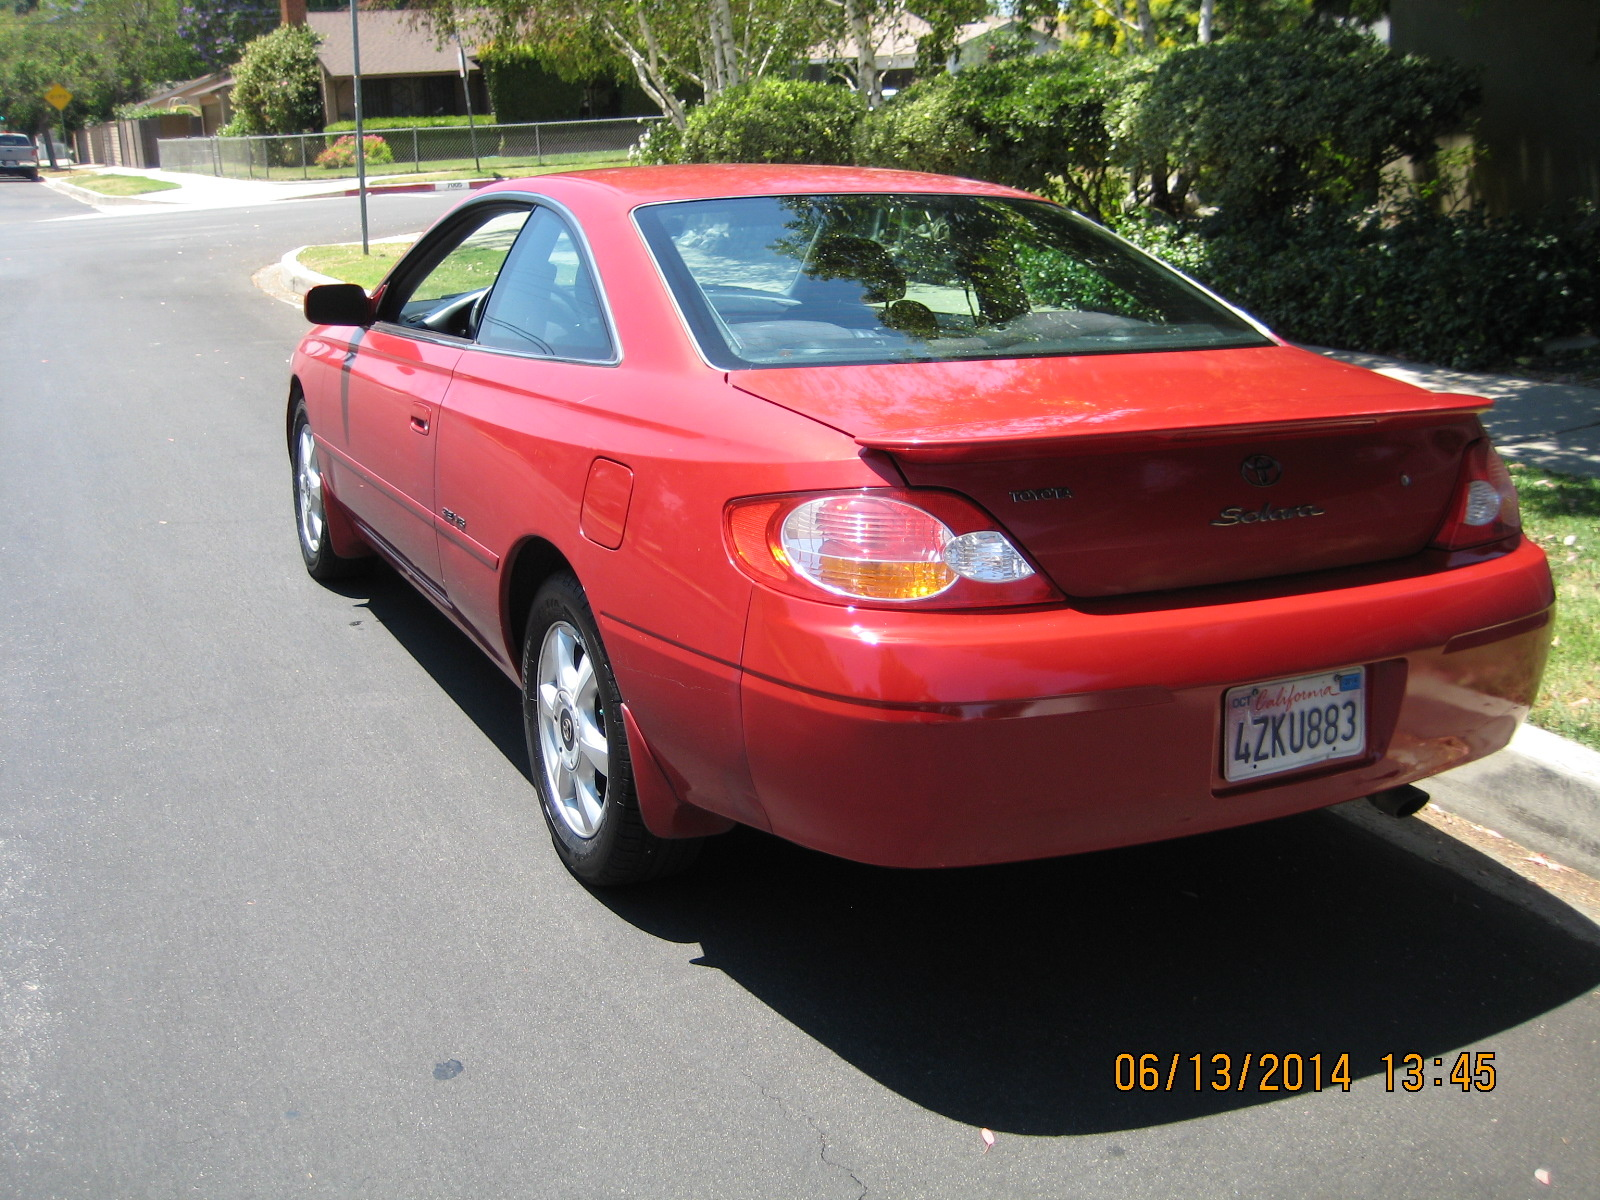 Picture of 2002 Toyota Camry Solara SE V6 Coupe